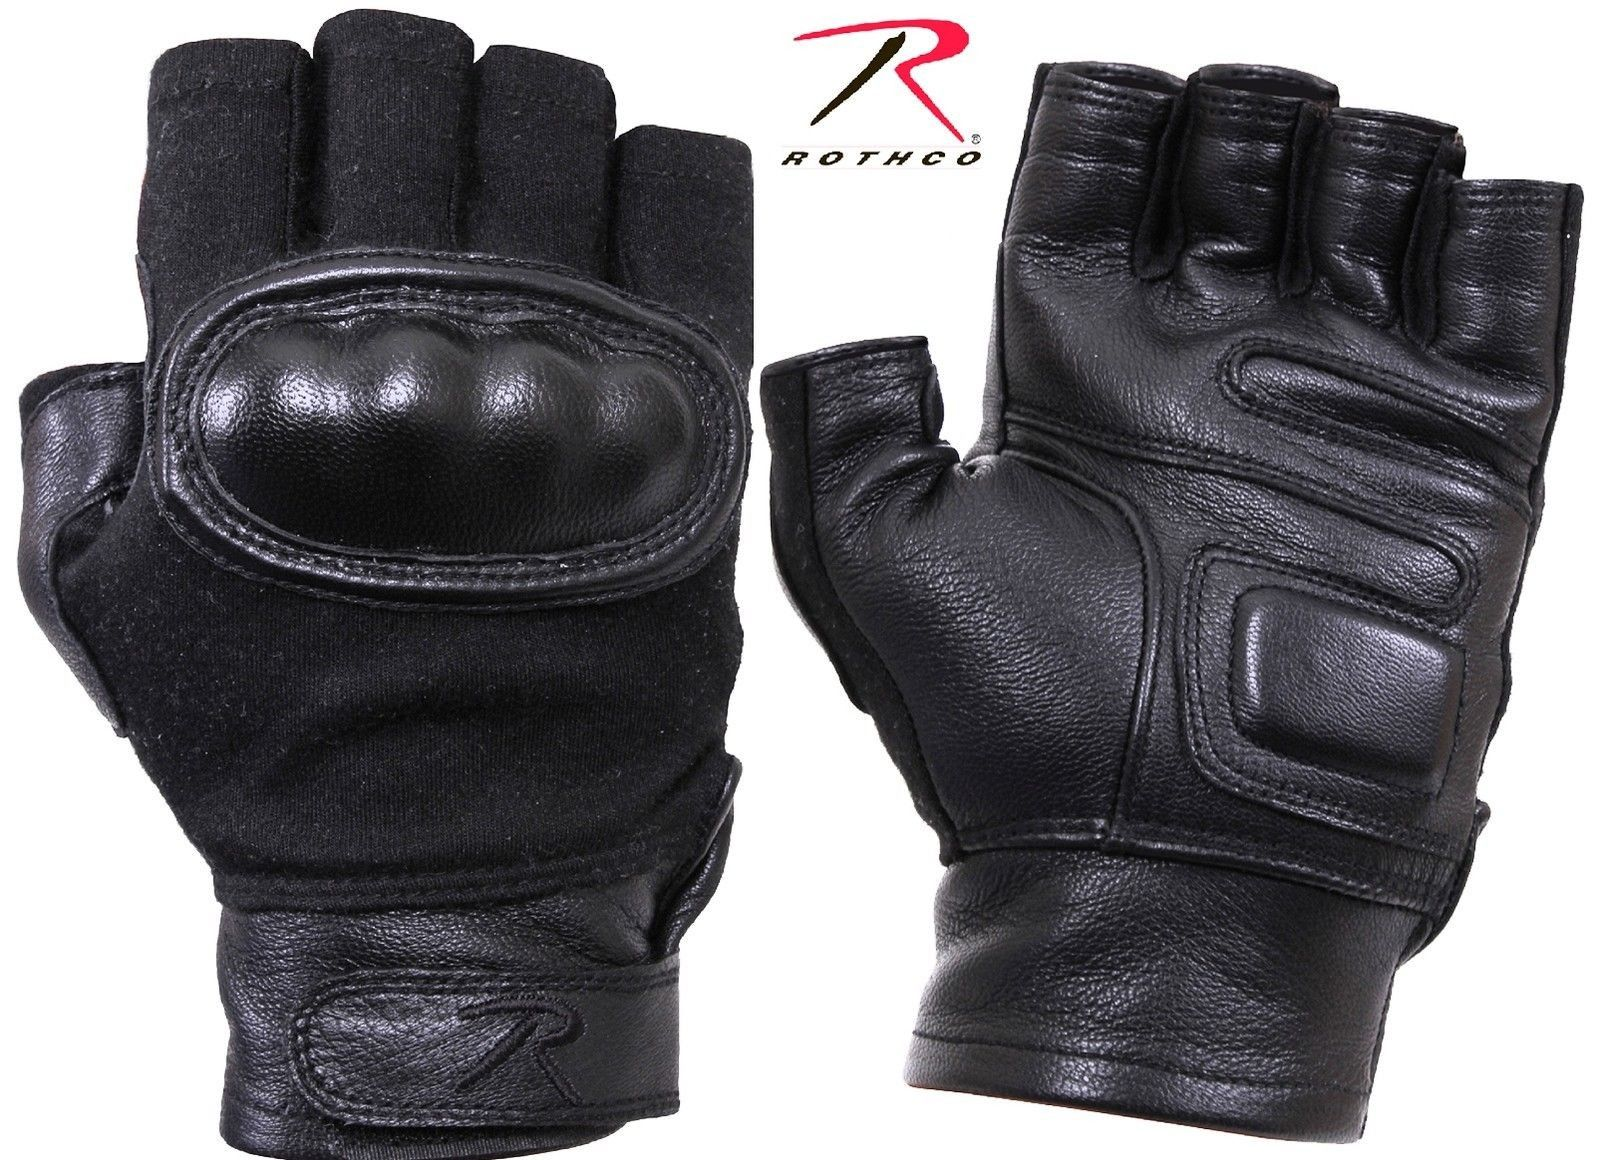 Black gardening gloves - Black Hard Knuckle Fingerless Gloves Mens Tactical Duty Field Work Gloves